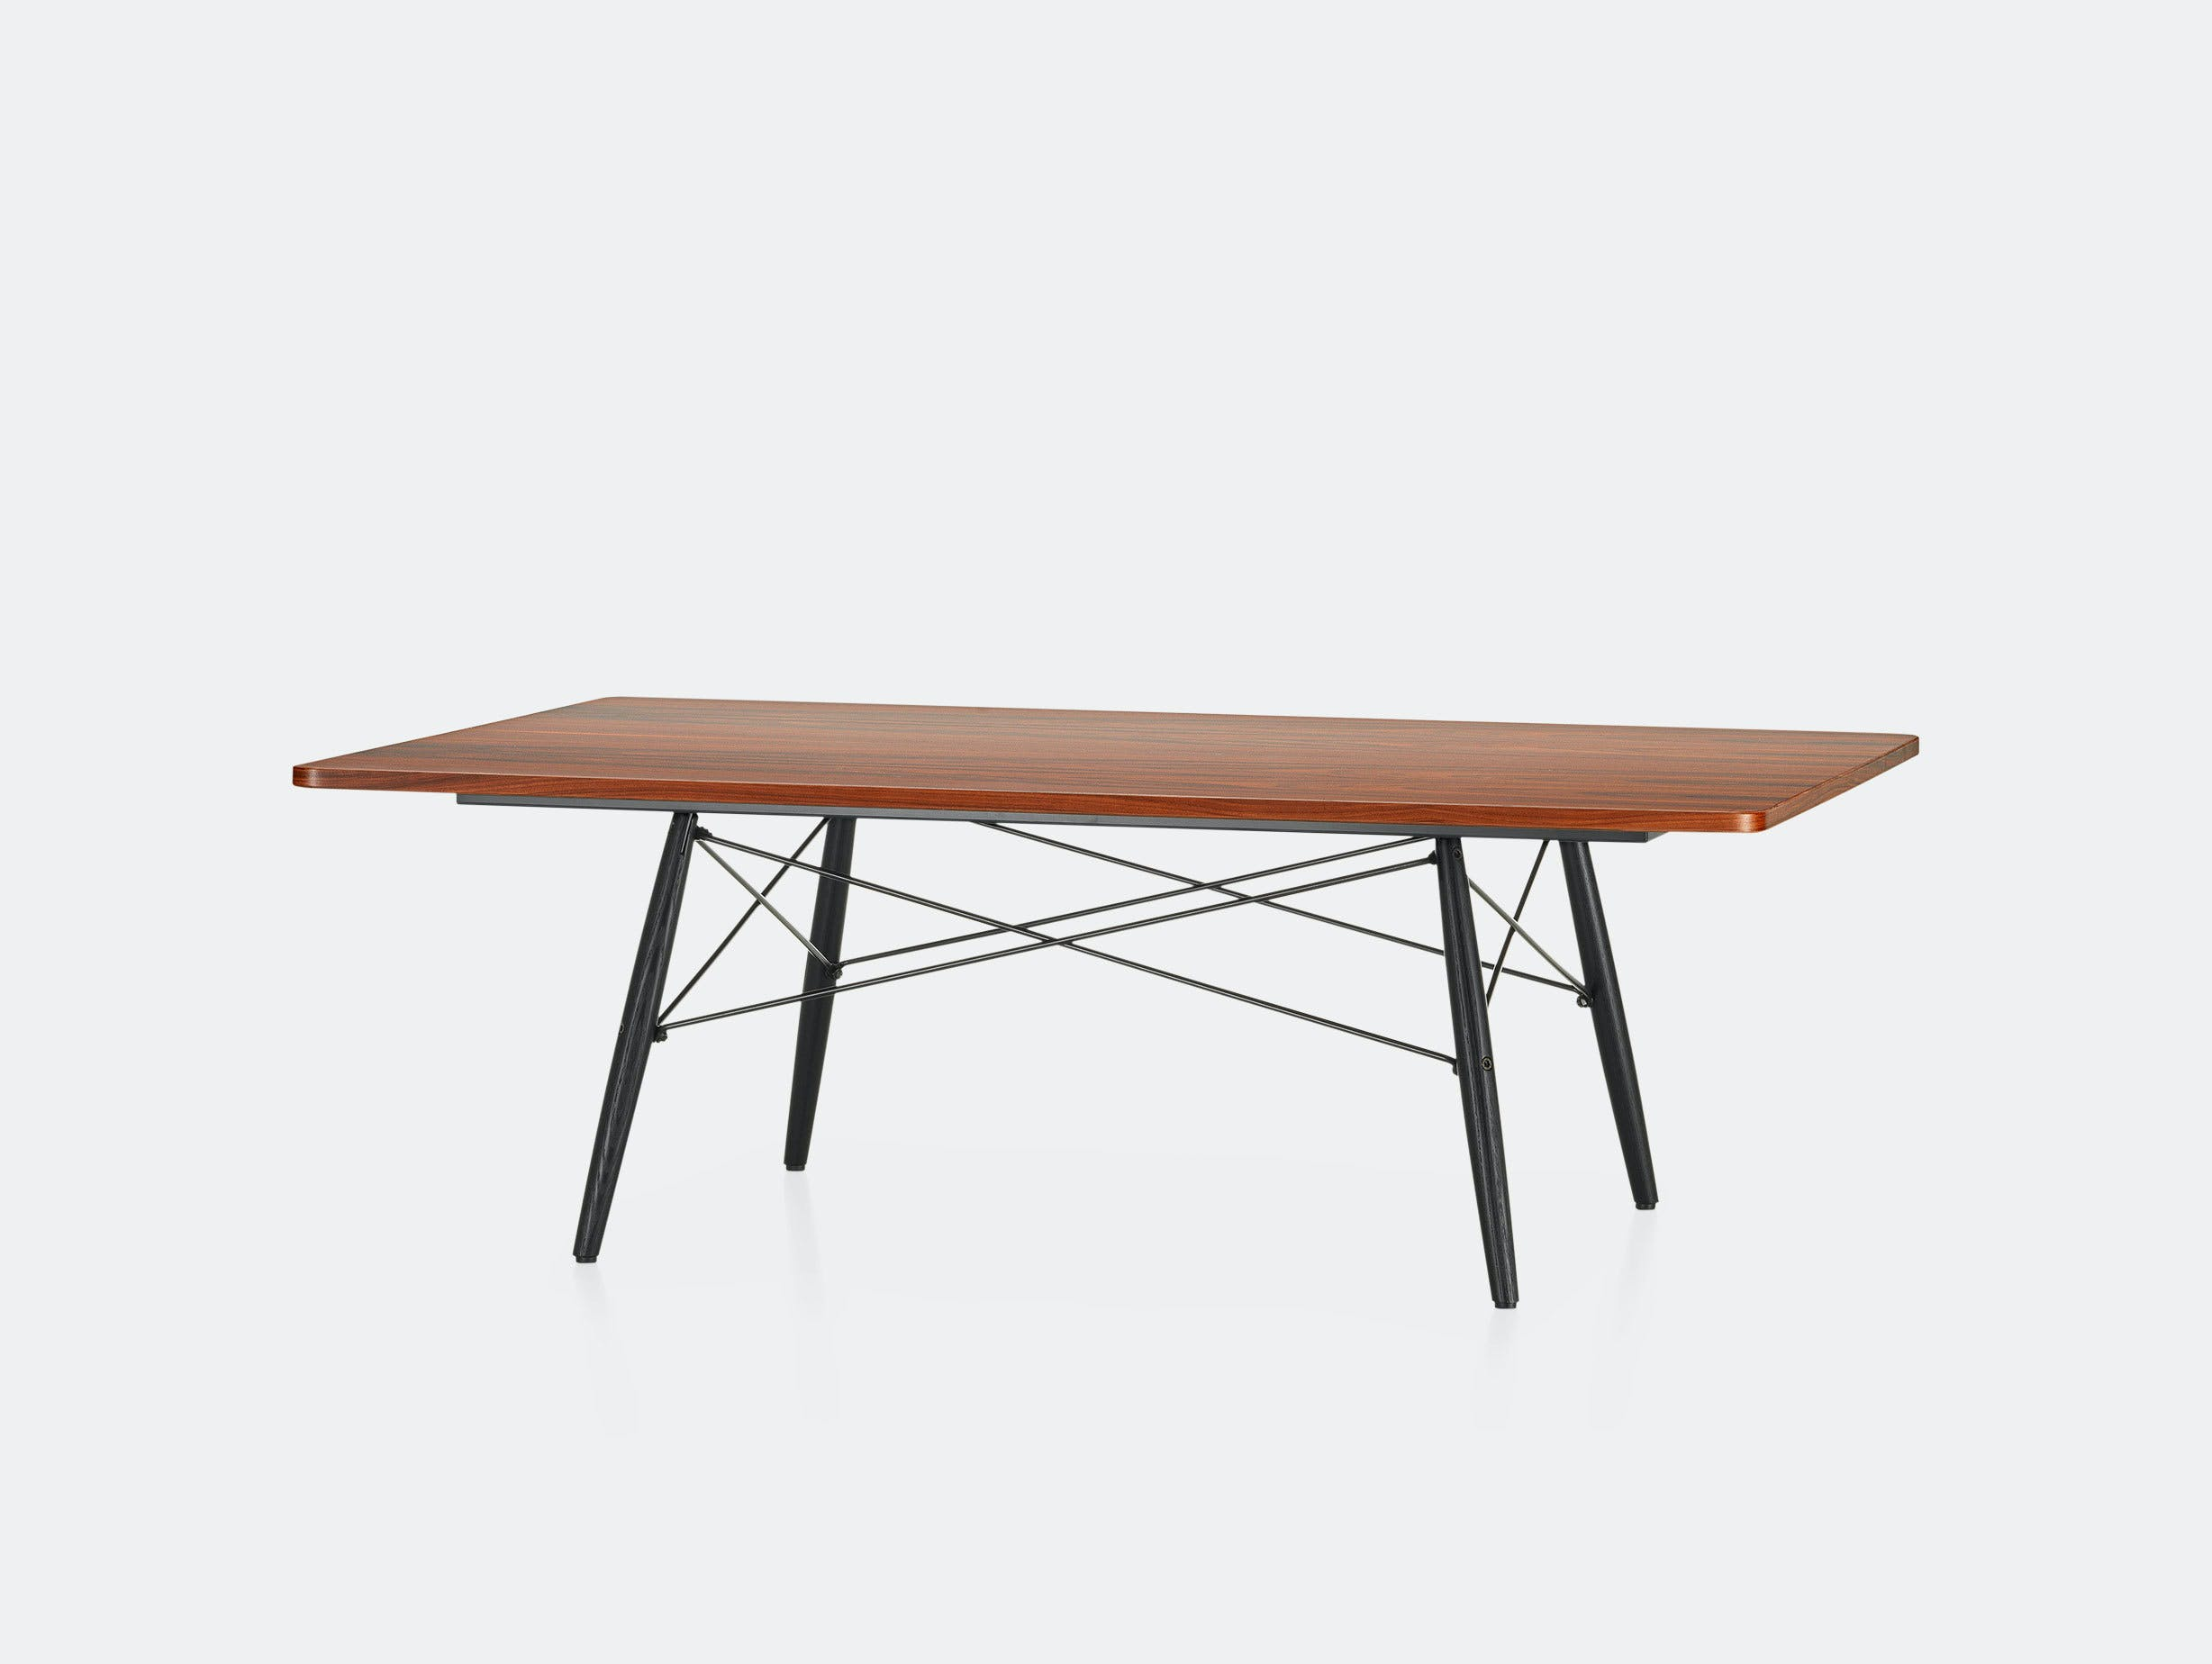 Vitra Eames Coffee Table Santos Palisander Charles And Ray Eames